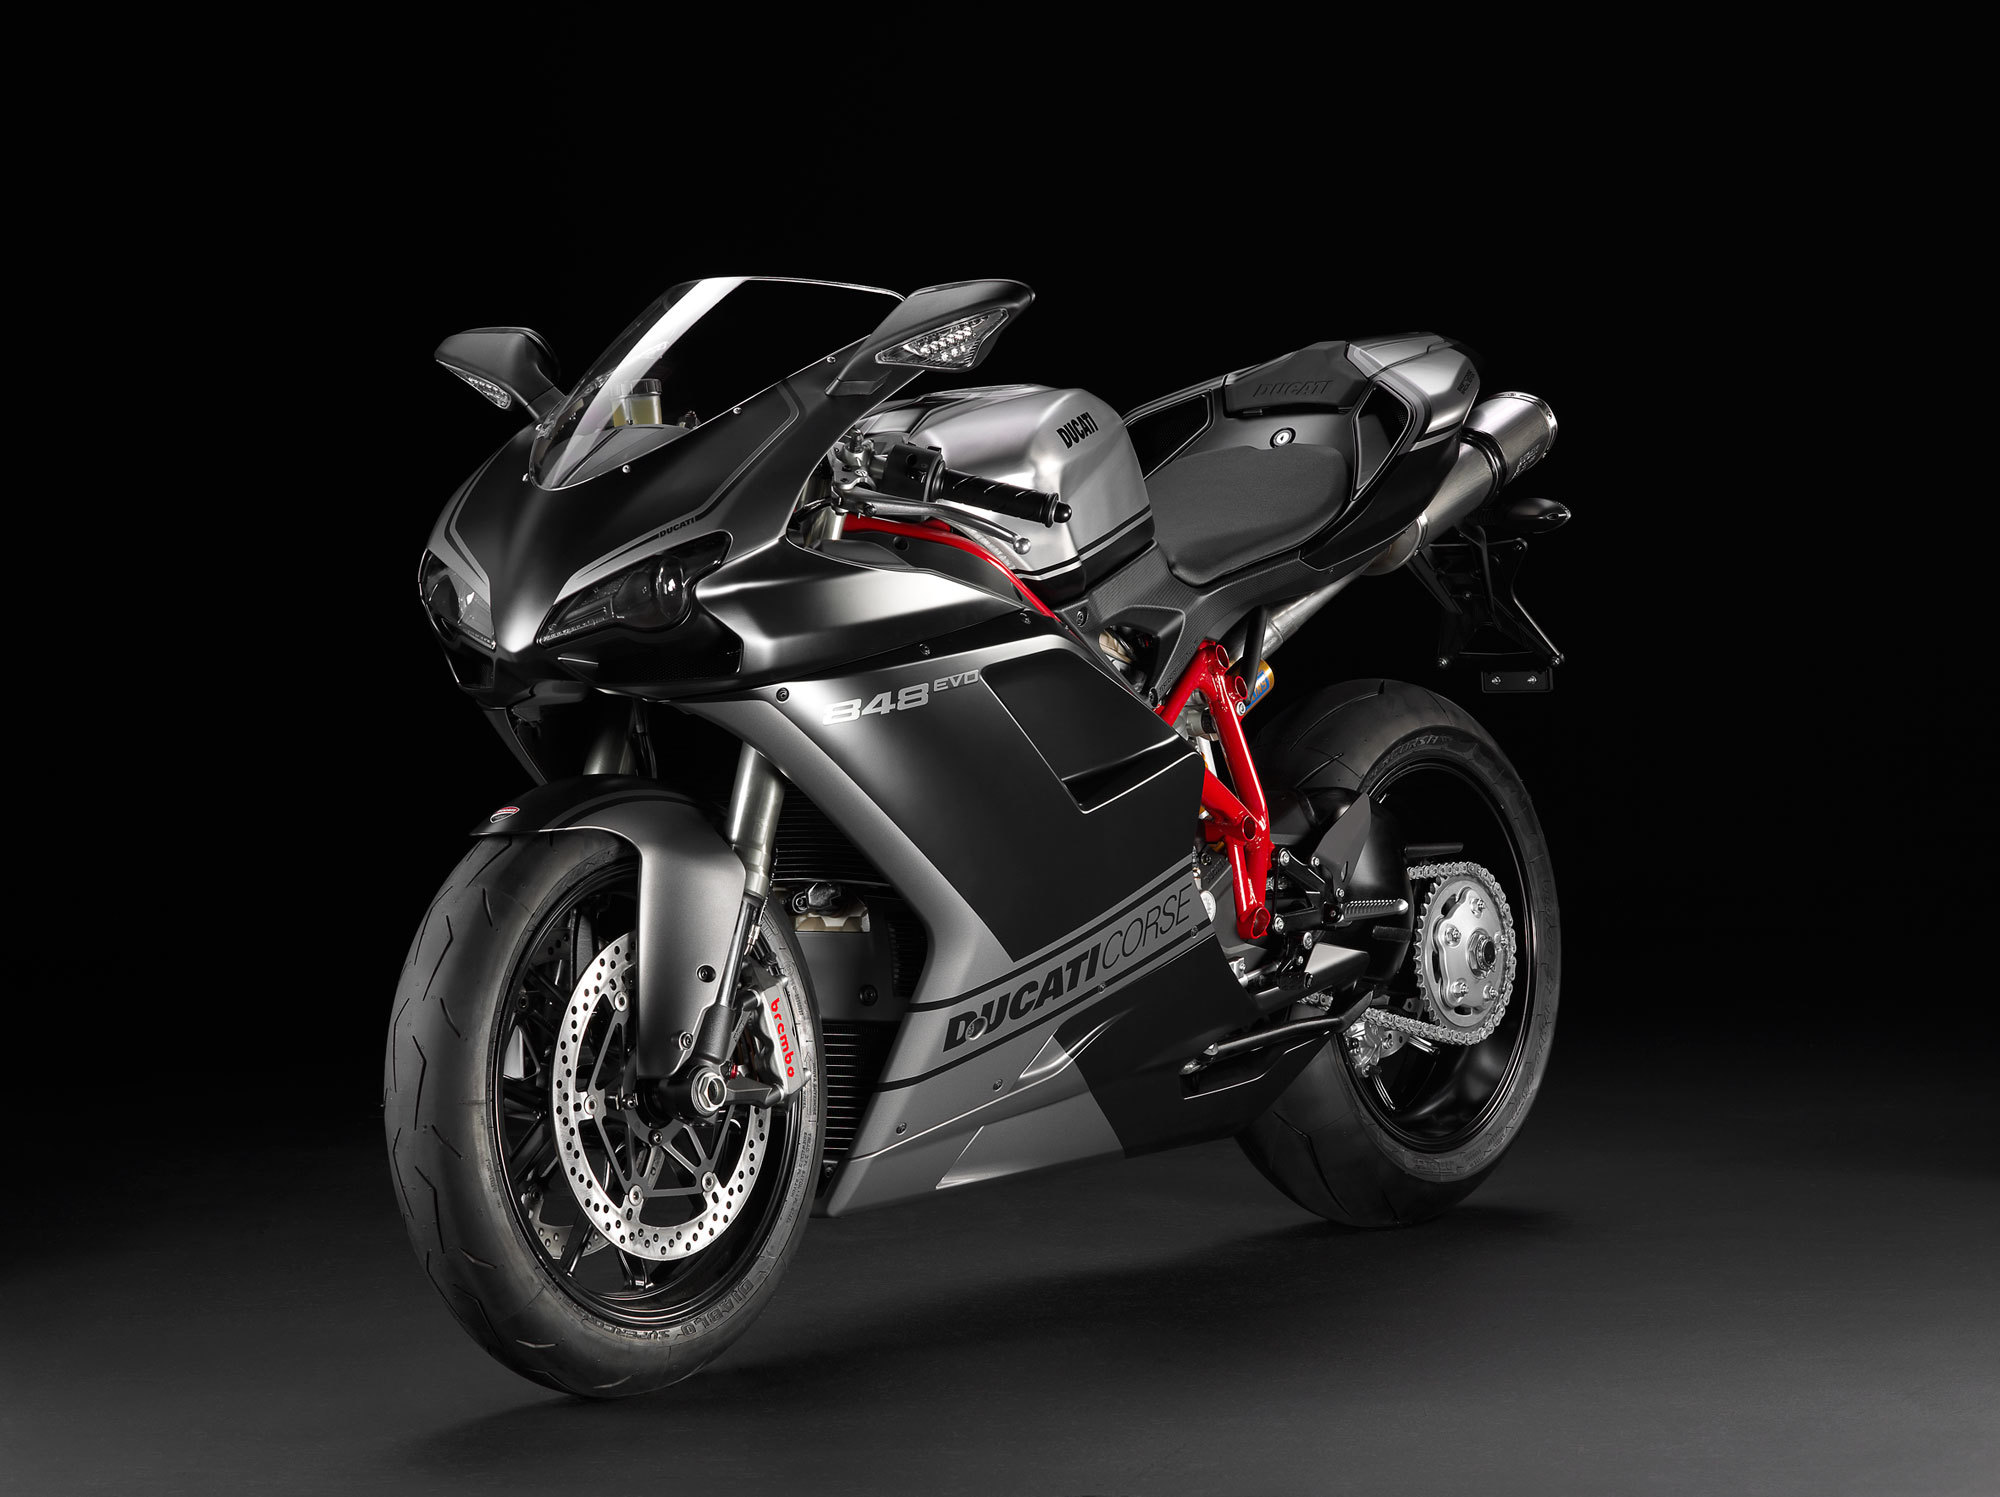 4 ducati superbike 848 evo hd wallpapers | background images